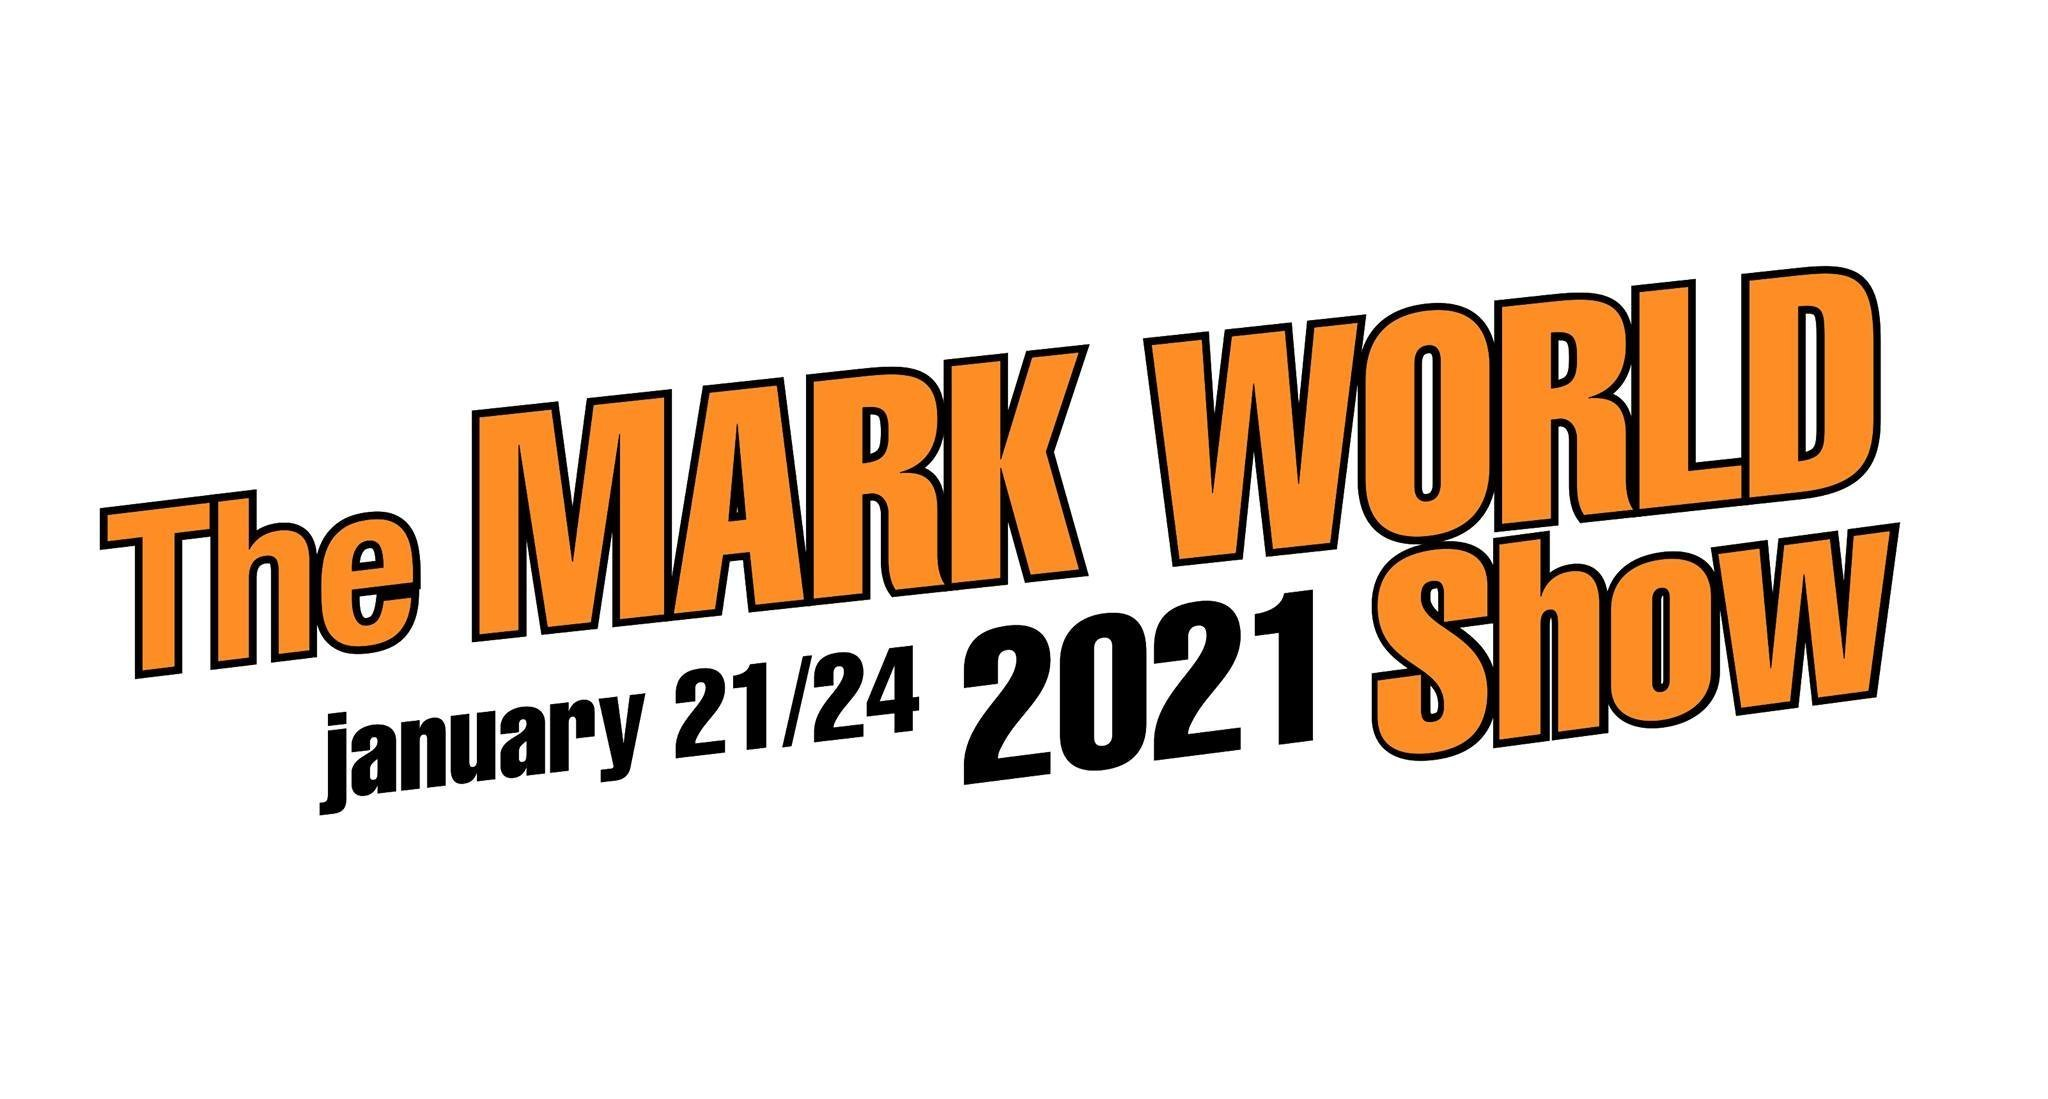 The MARK WORLD Show